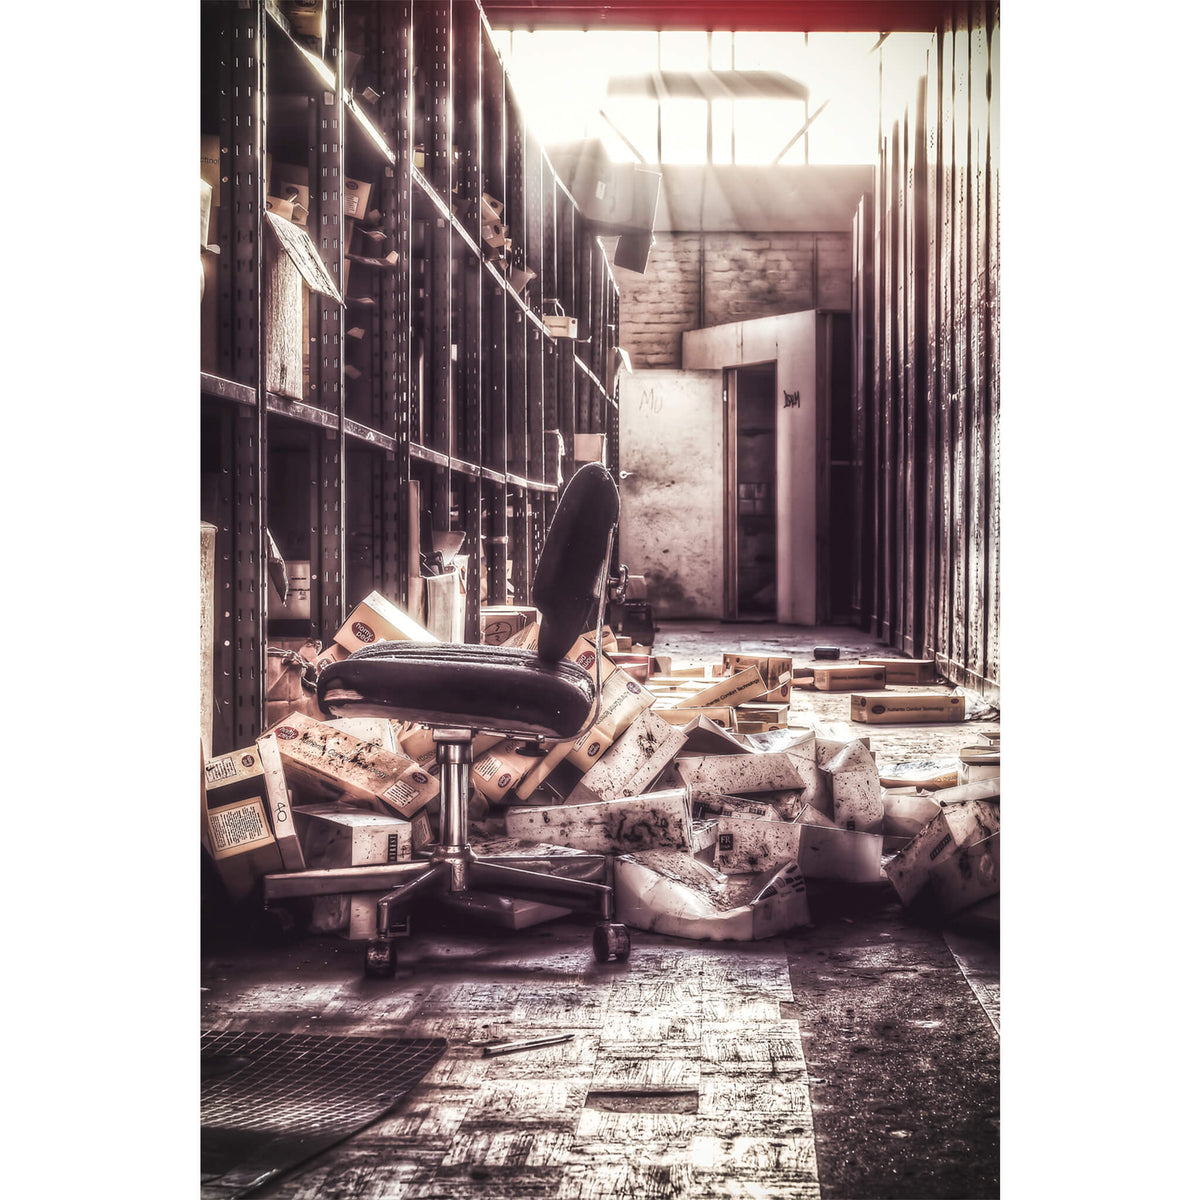 Storage Shelves | Abandoned Shoe Factory Fine Art Print - Lost Collective Shop